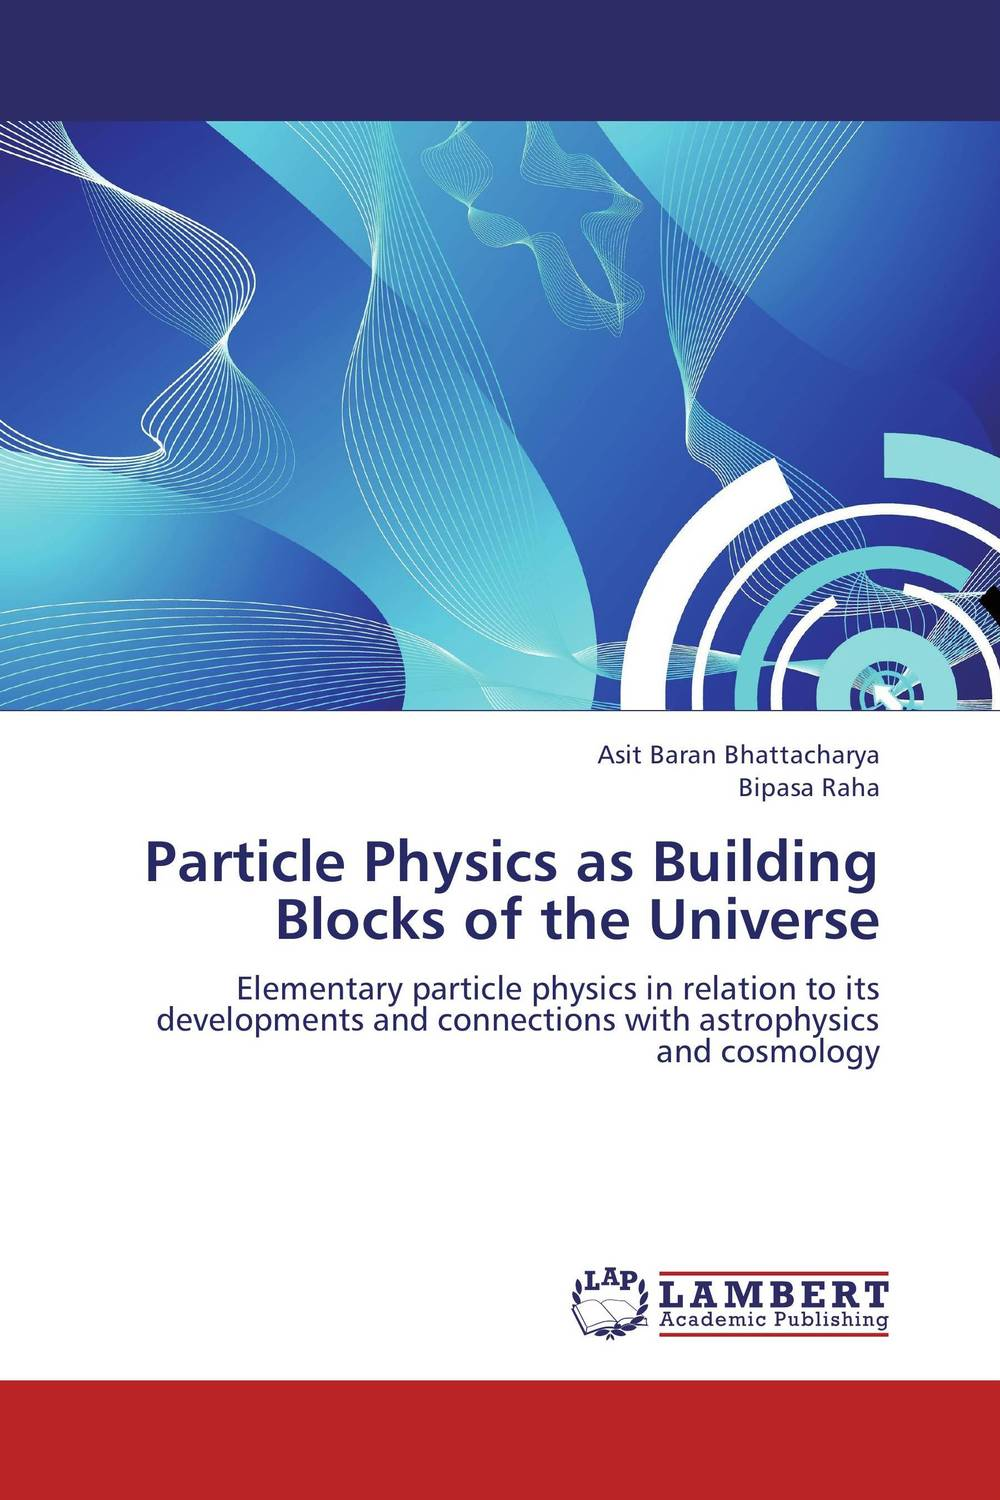 Particle Physics as Building Blocks of the Universe fundamentals of physics extended 9th edition international student version with wileyplus set